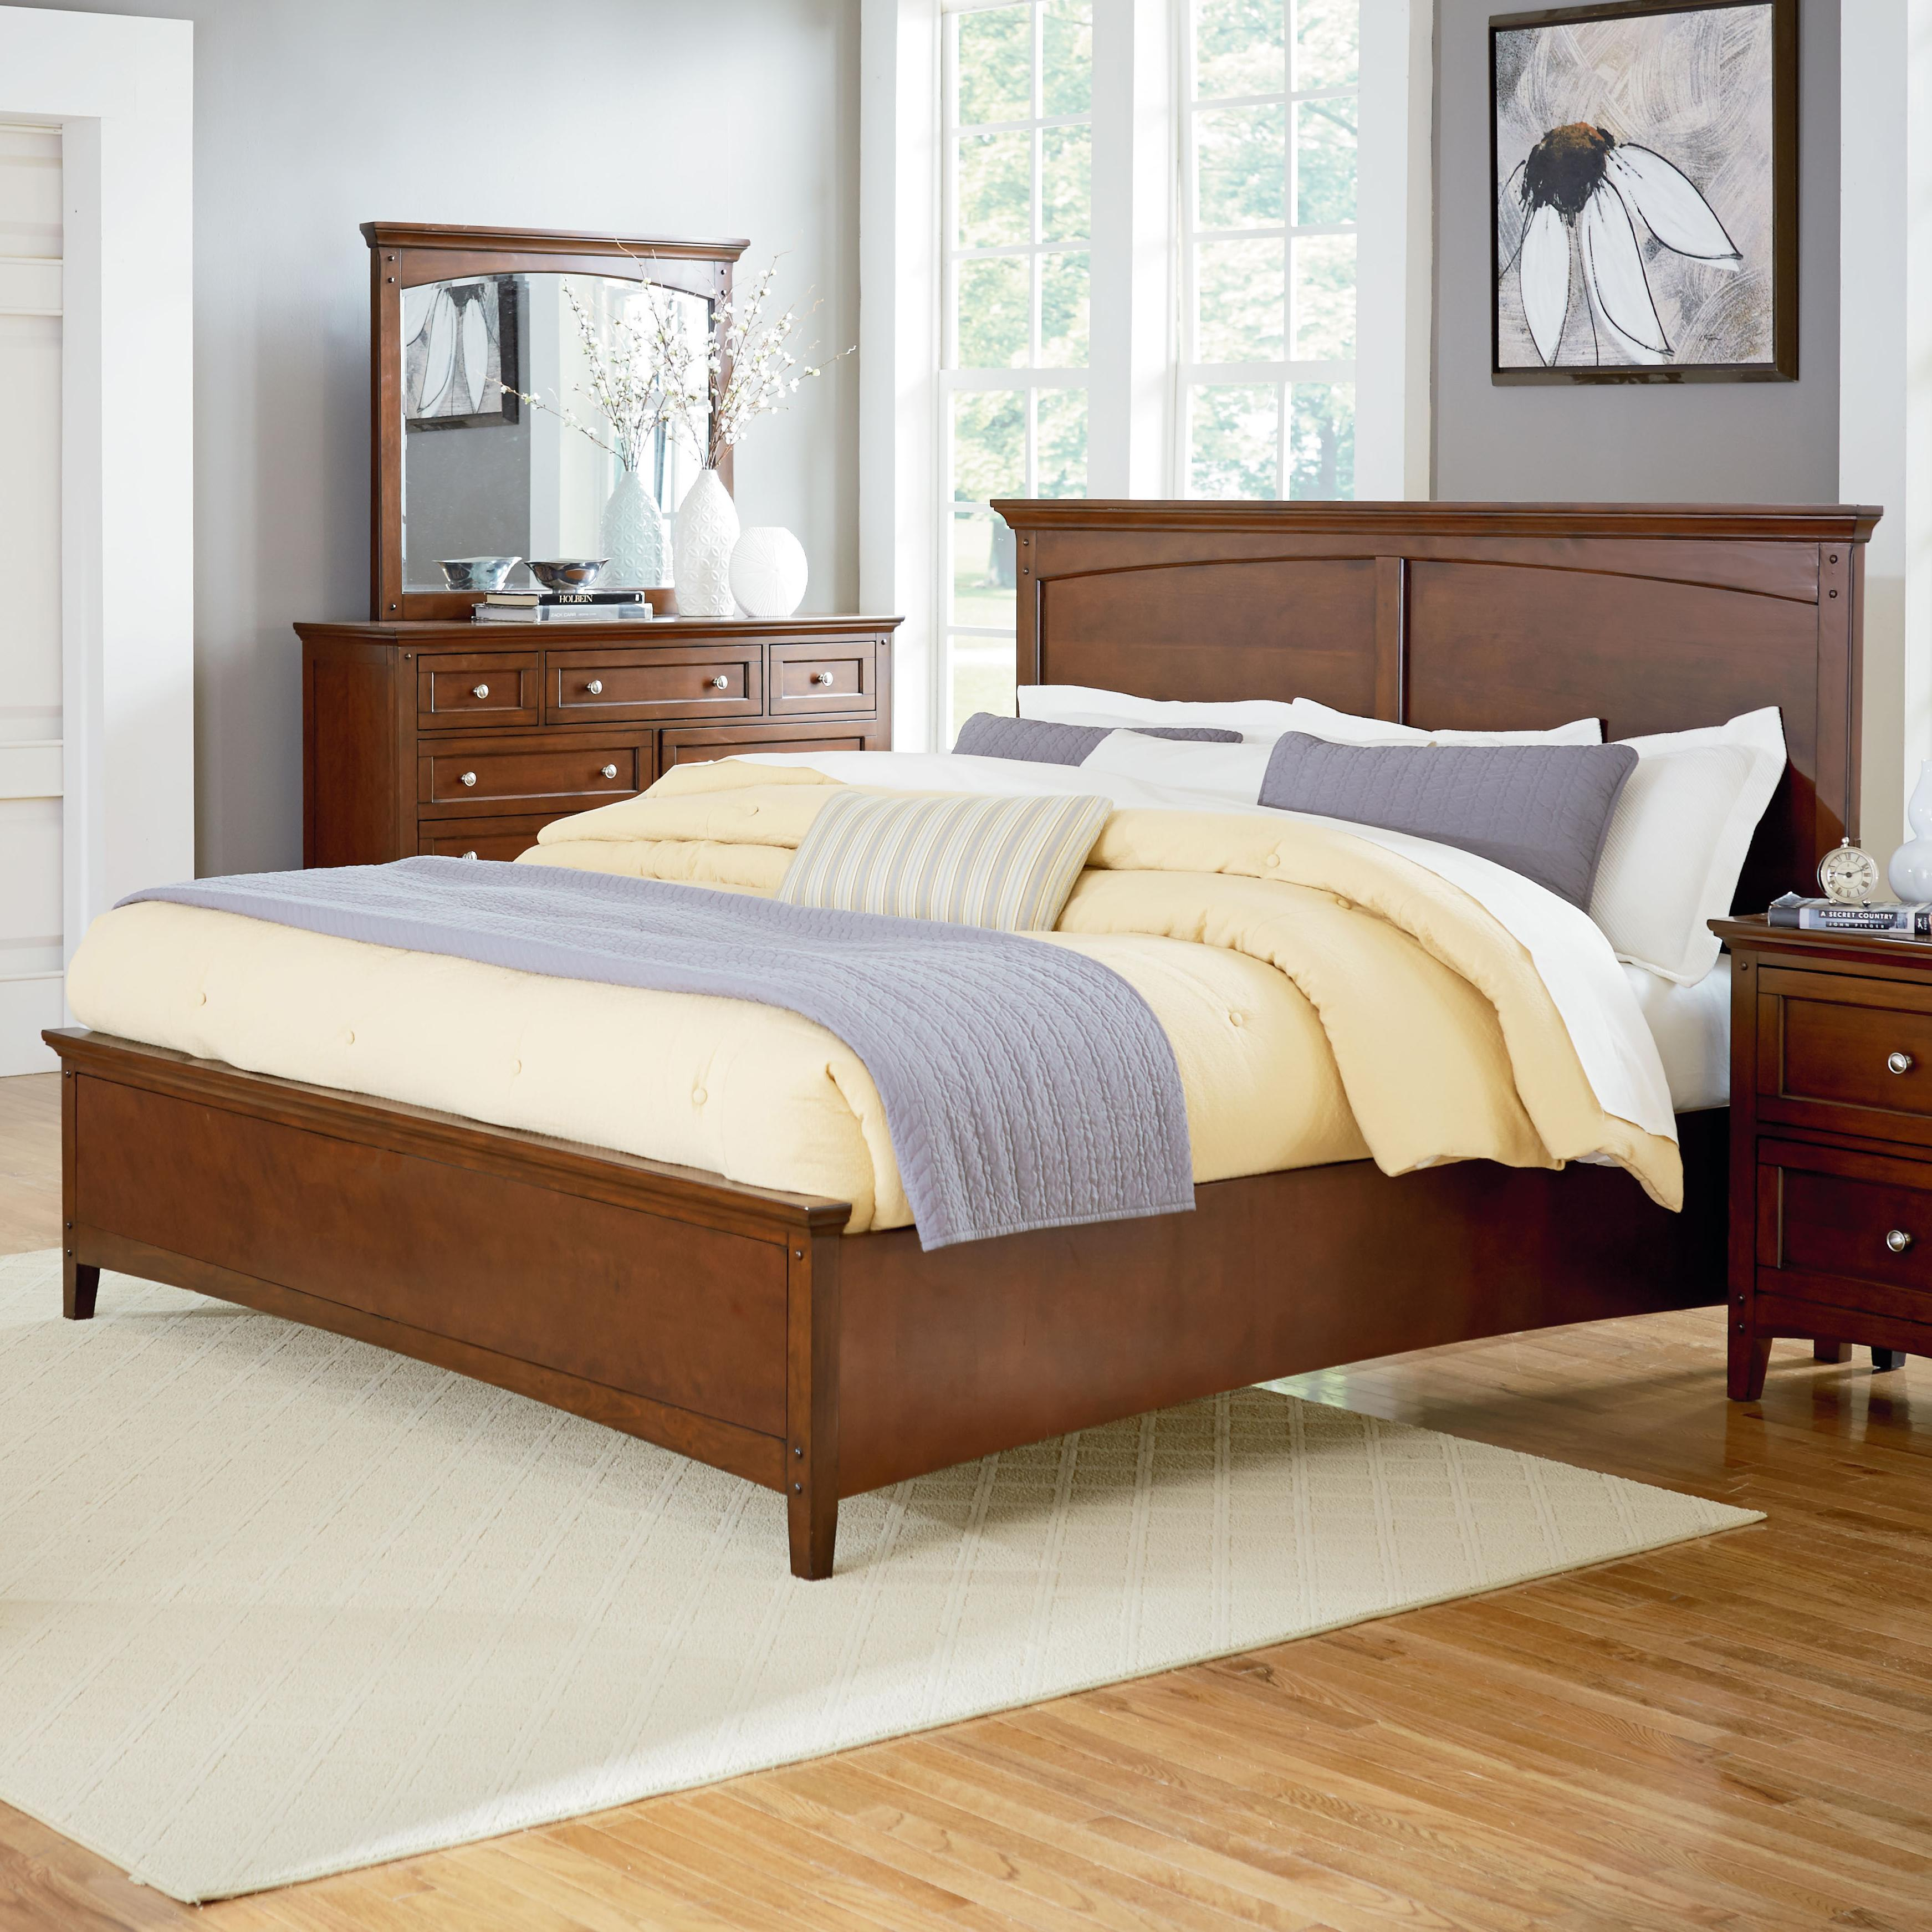 Standard Furniture Cooperstown King Panel Bed - Item Number: 93811+14+12